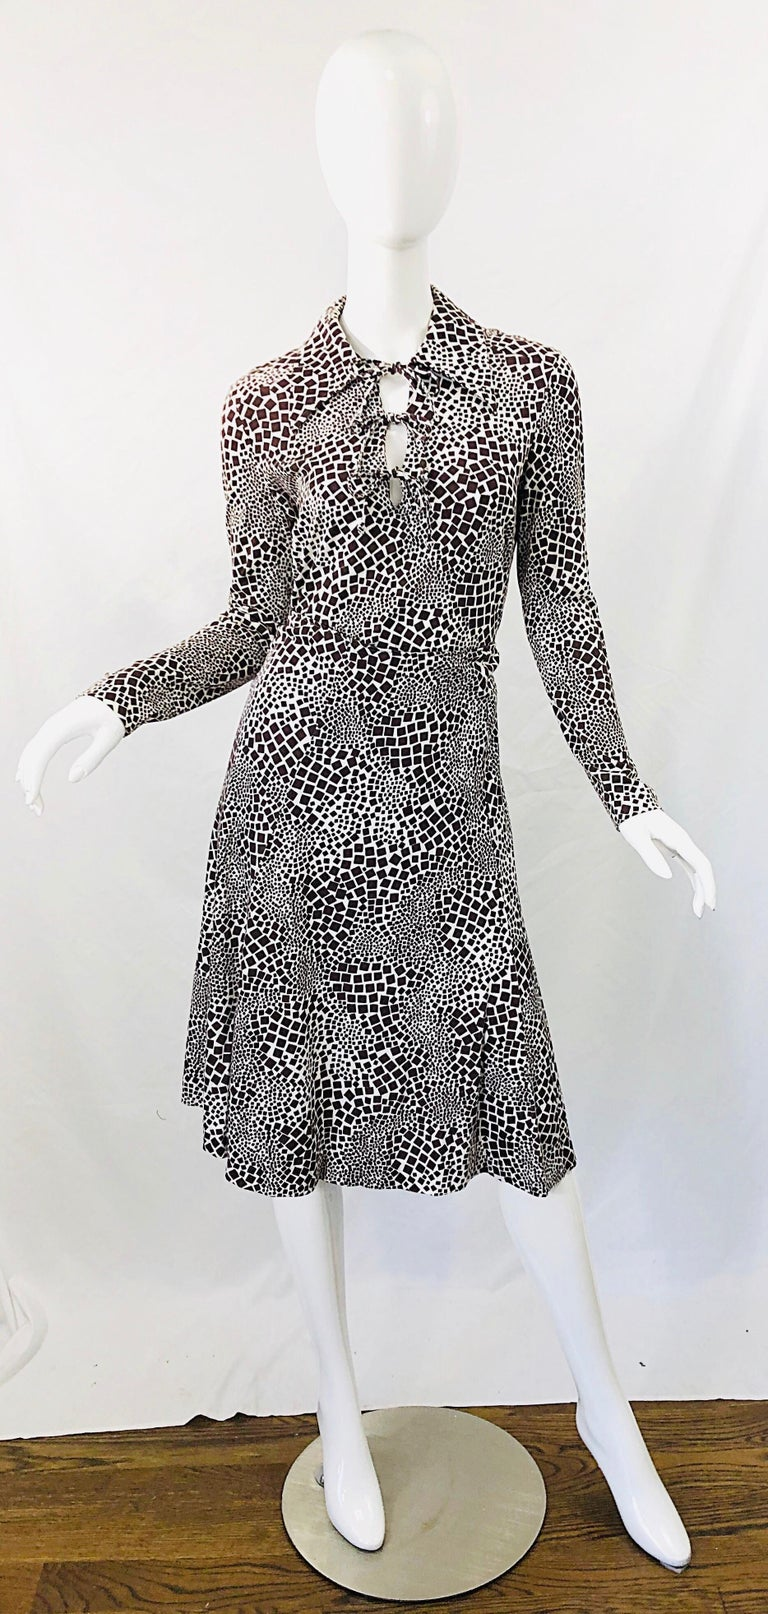 1970s Diane Von Furstenberg Brown and White Rayon Cotton Cut Out Top Skirt Dress For Sale 11